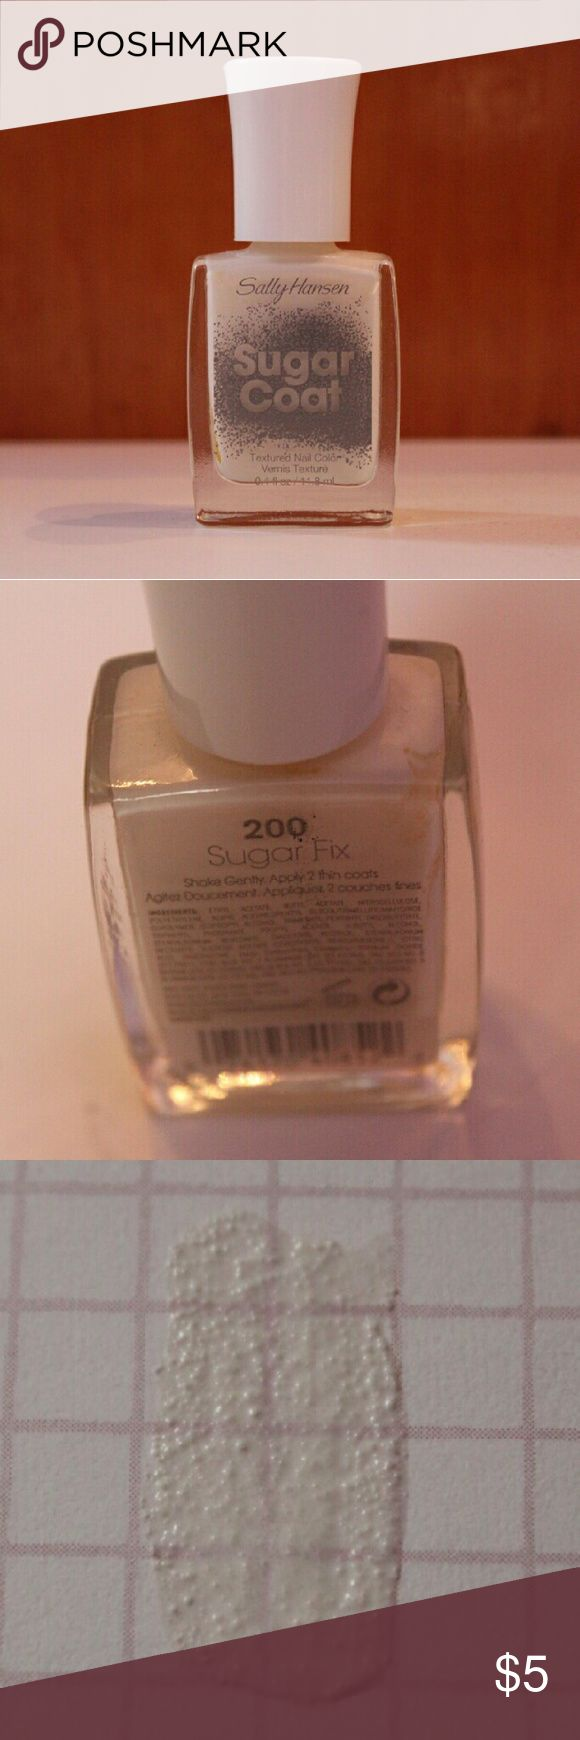 Sally Hansen Sugar Coat White Nail Polish This textured nail color gives a sugary effect to your nail. It looks great this time of year and would make your nails look snowy! Never used! Sally Hansen Other